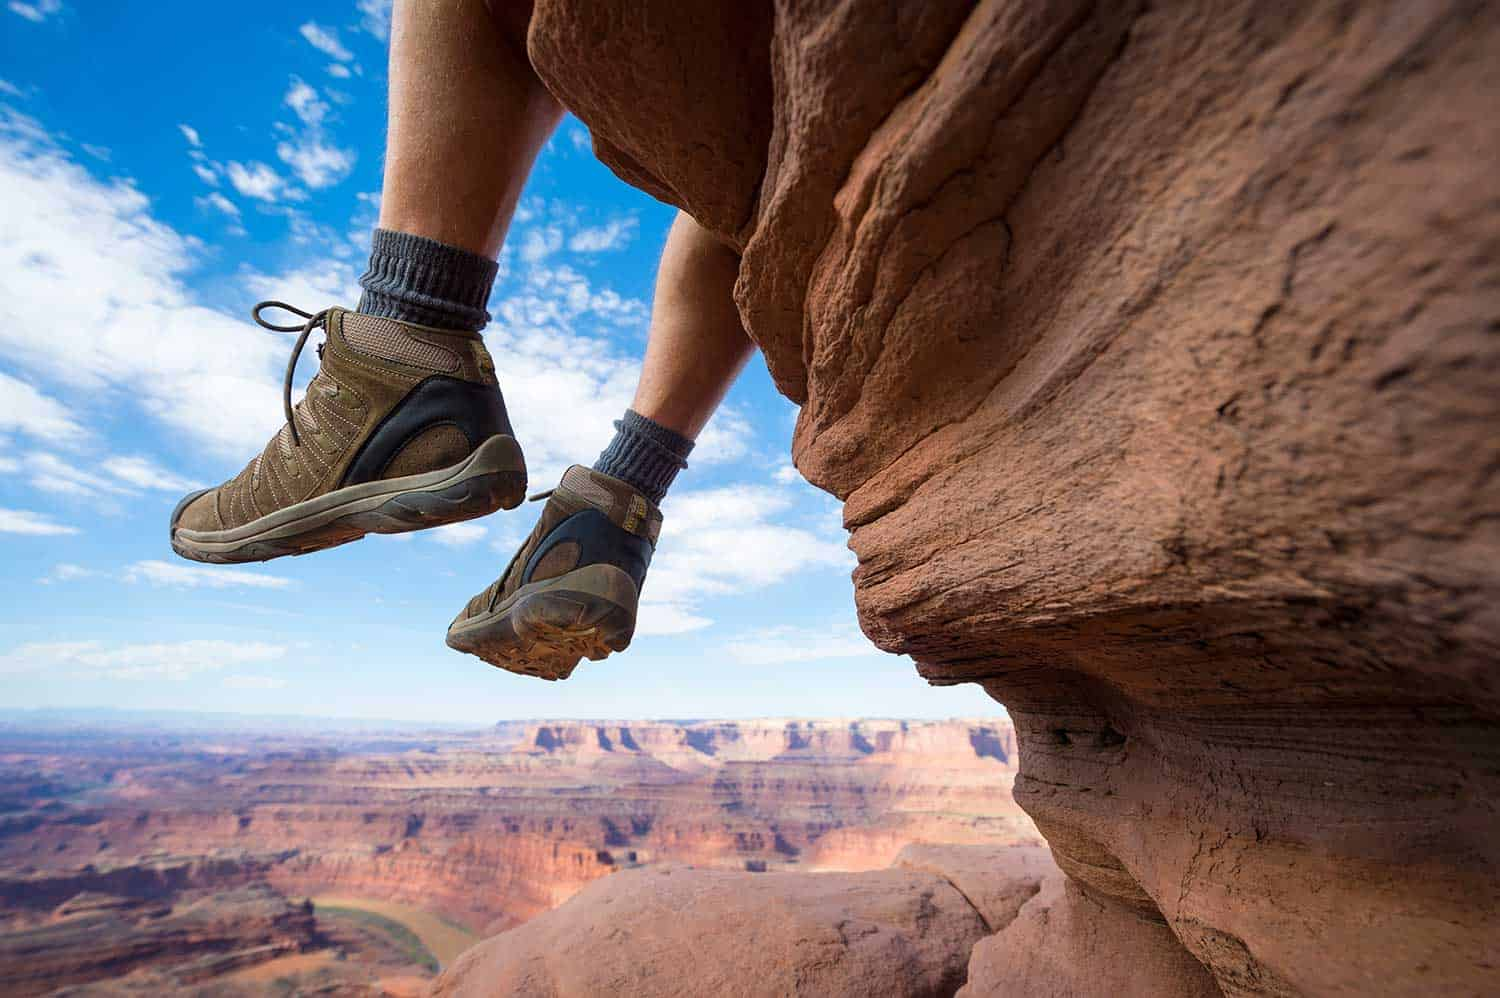 Portrait of the boots of a hiker hanging outdoors above dramatic canyon landscape